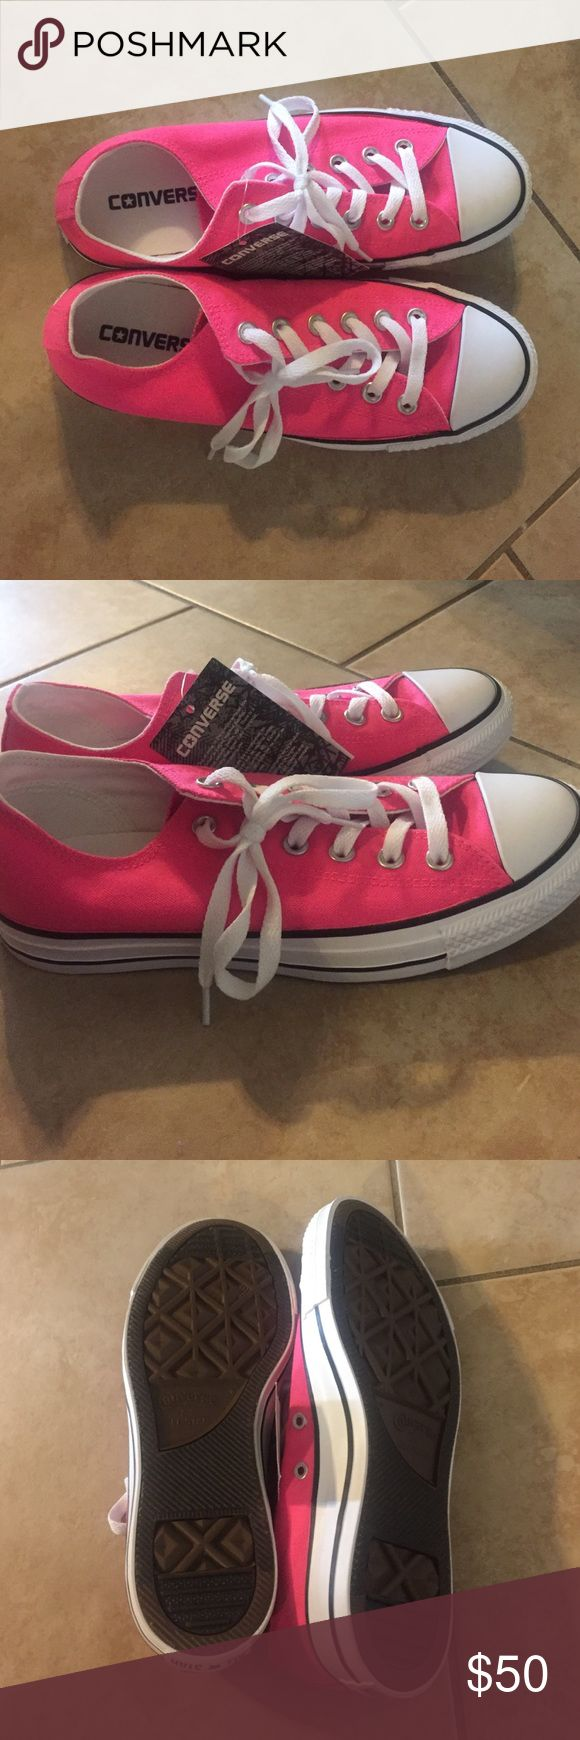 Neon Pink Converse These are never worn! This pink color is beautiful and looks awesome with pretty much anything. 50 dollars or best offer! Converse Shoes Sneakers